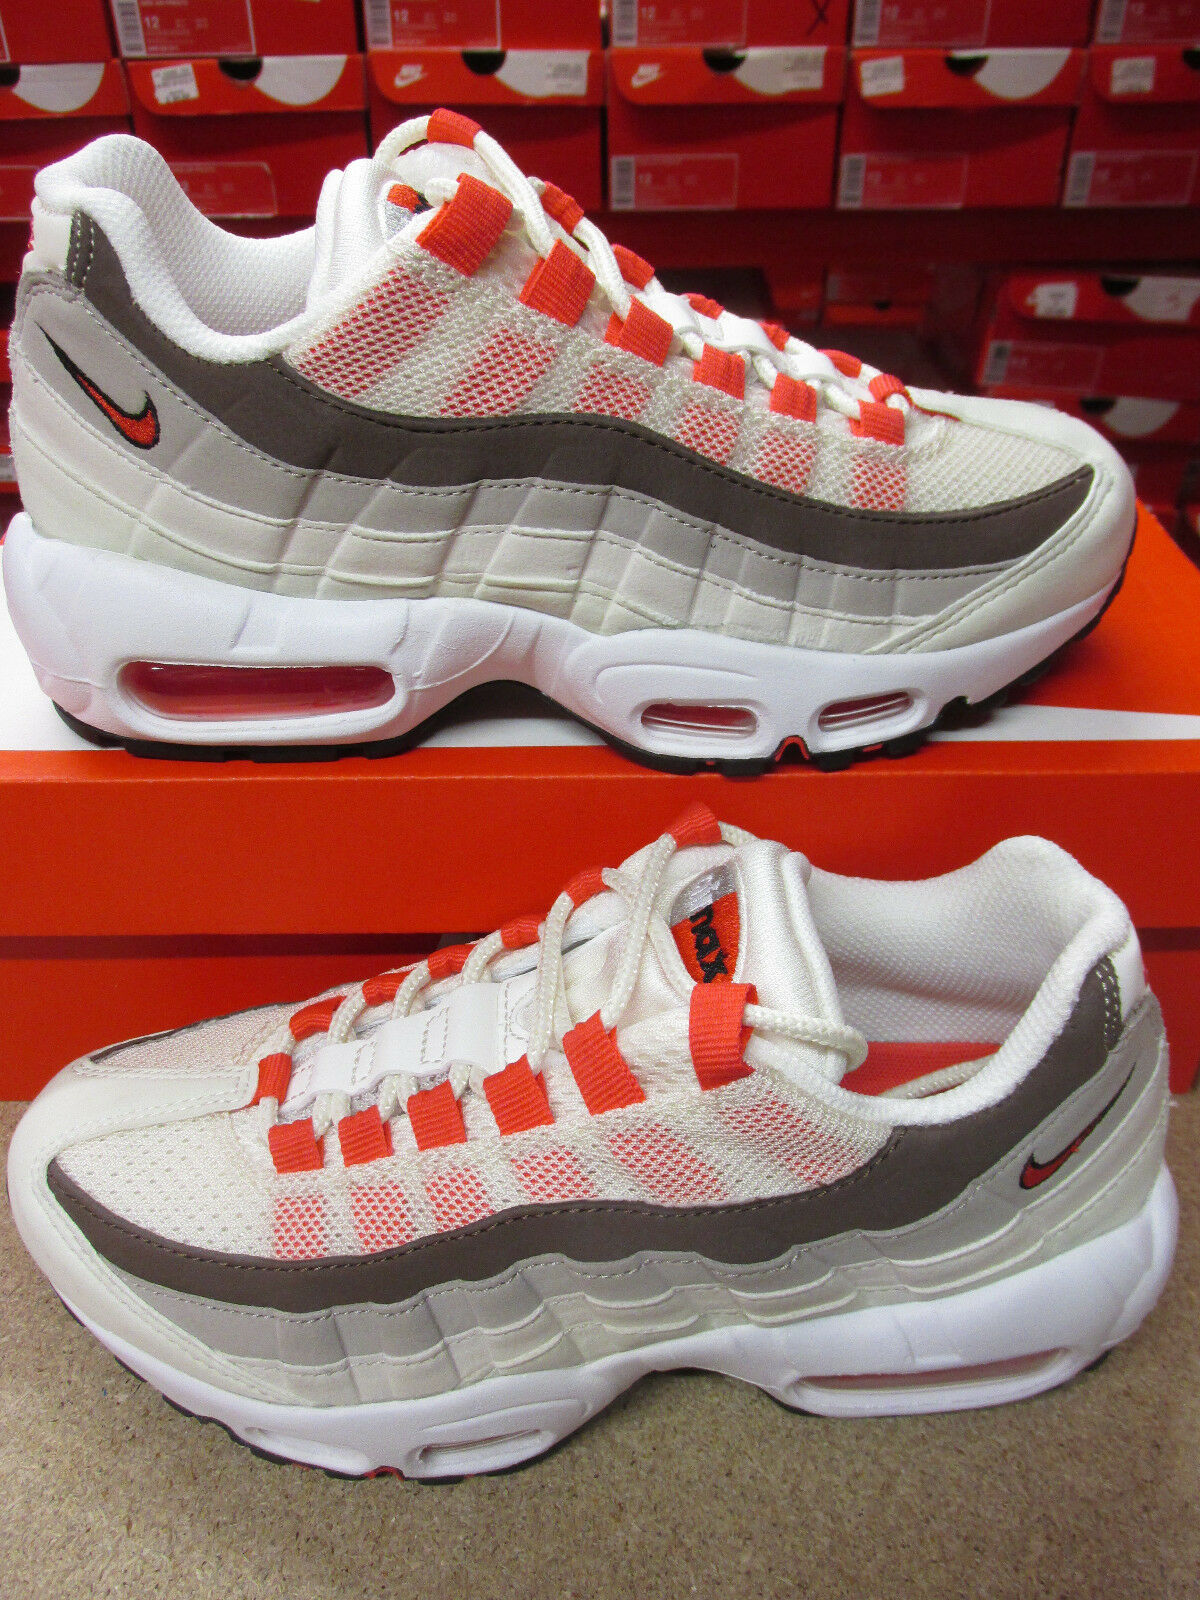 nike womens air max 95 running trainers 307960 102 sneakers shoes